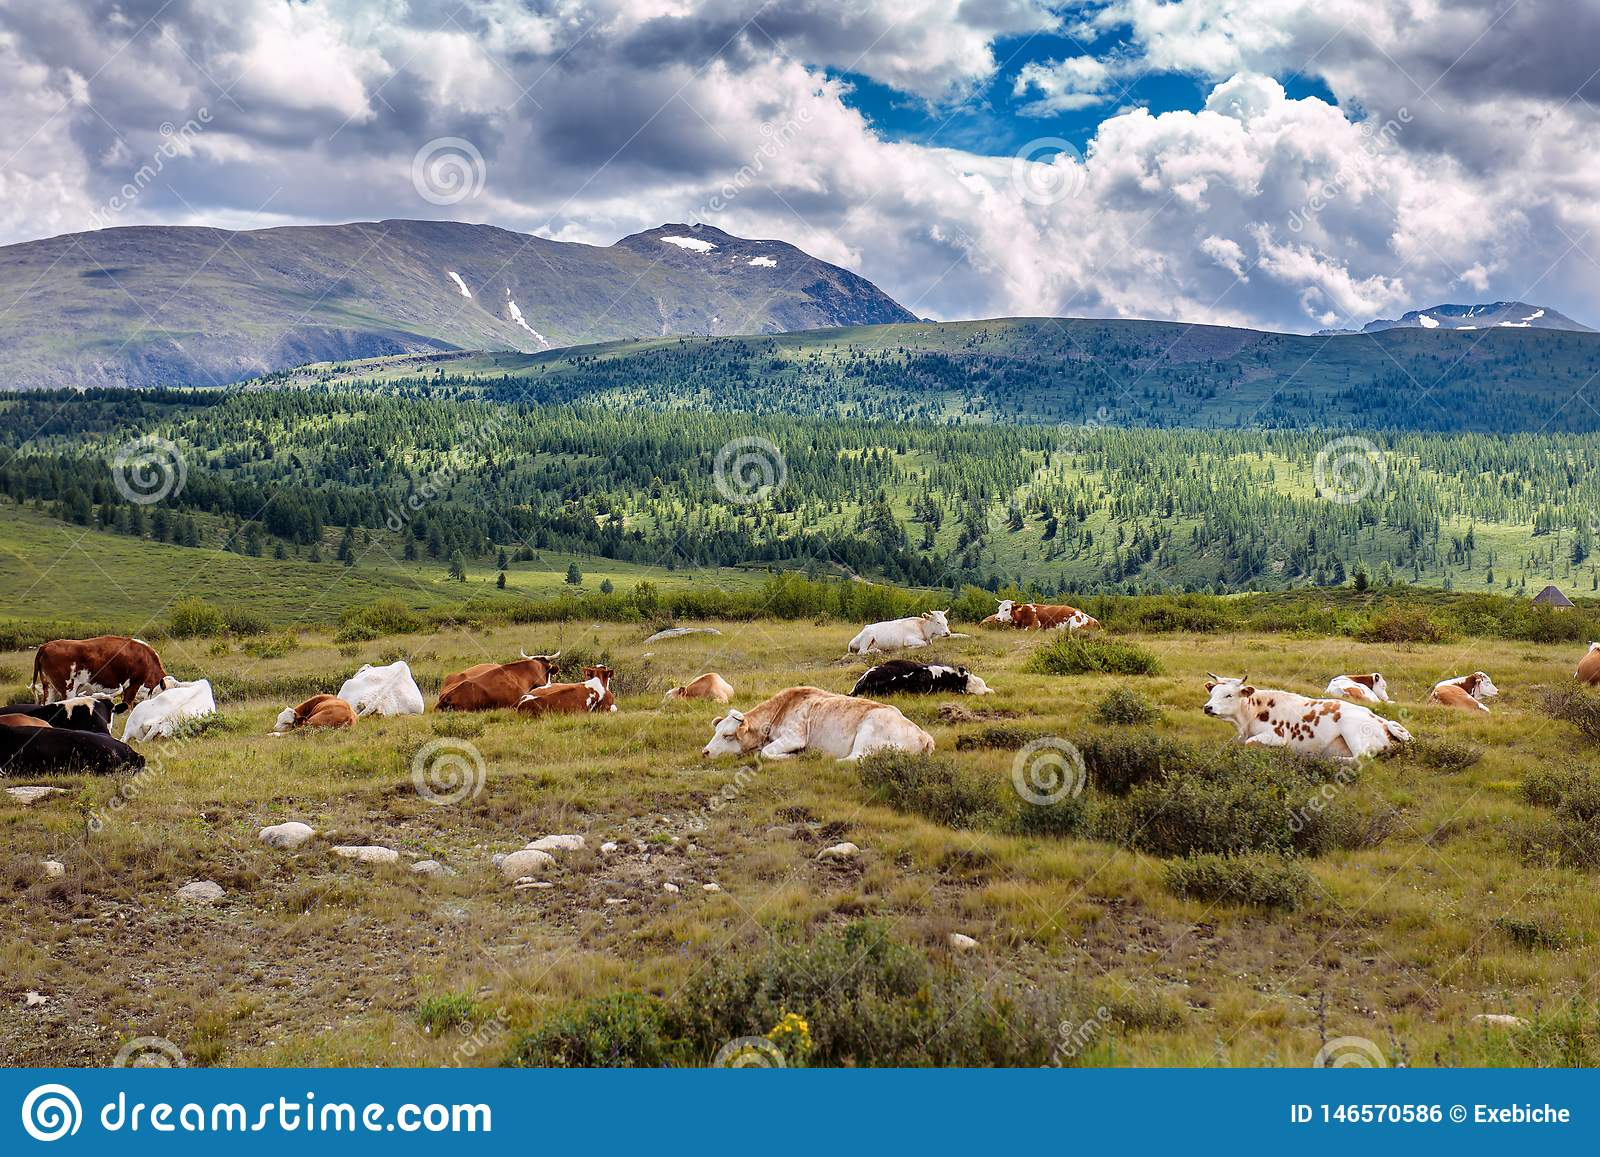 Free cows are resting on a mountain pasture in summer day. Cows graze freely in the mountains, lie on the ground against the